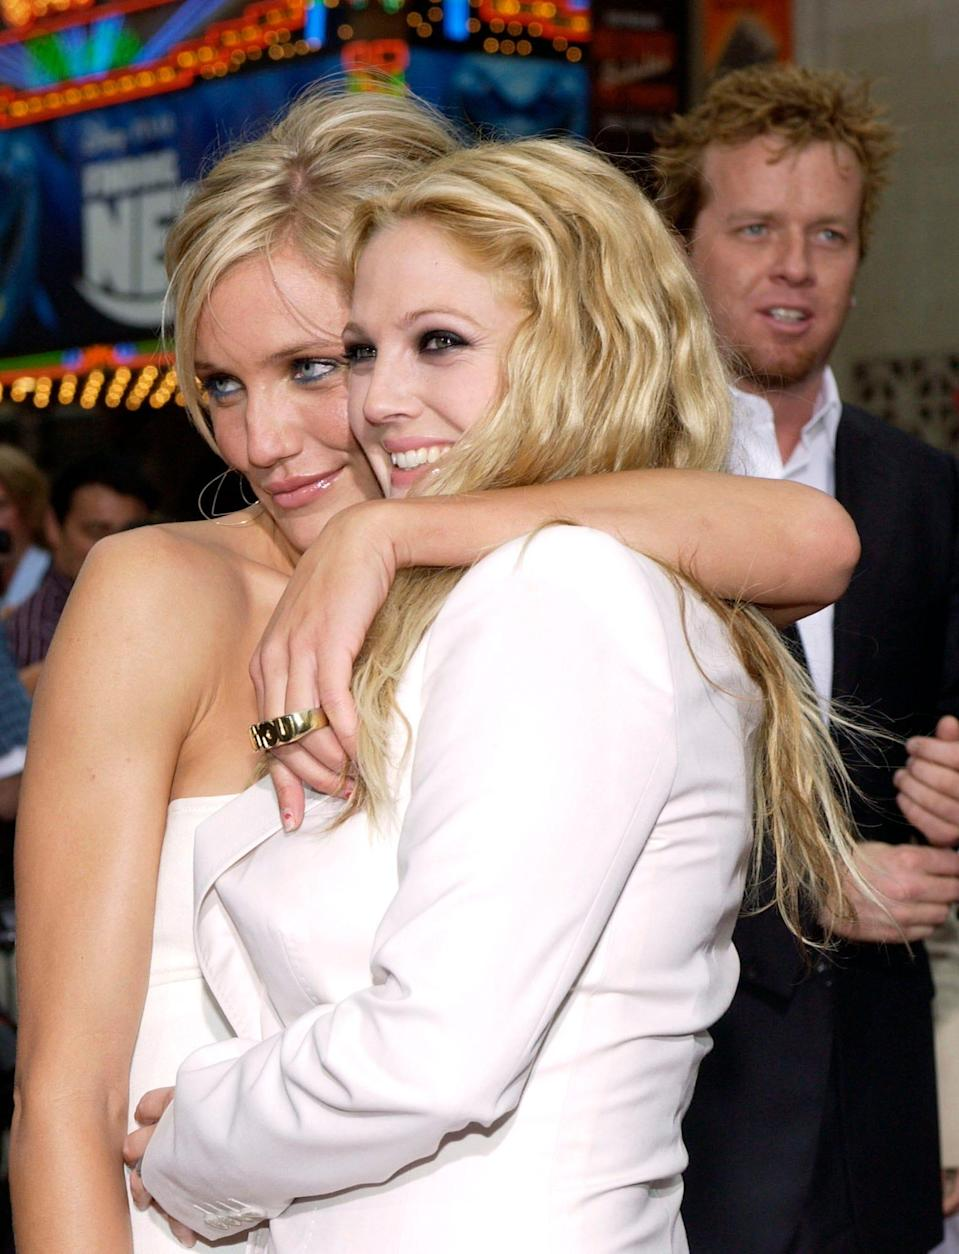 """Cameron Diaz, left, and Drew Barrymore arrive at the premiere of """"Charlie's Angels: Full Throttle,"""" on June 18, 2003, in the Hollywood Section of Los Angeles."""